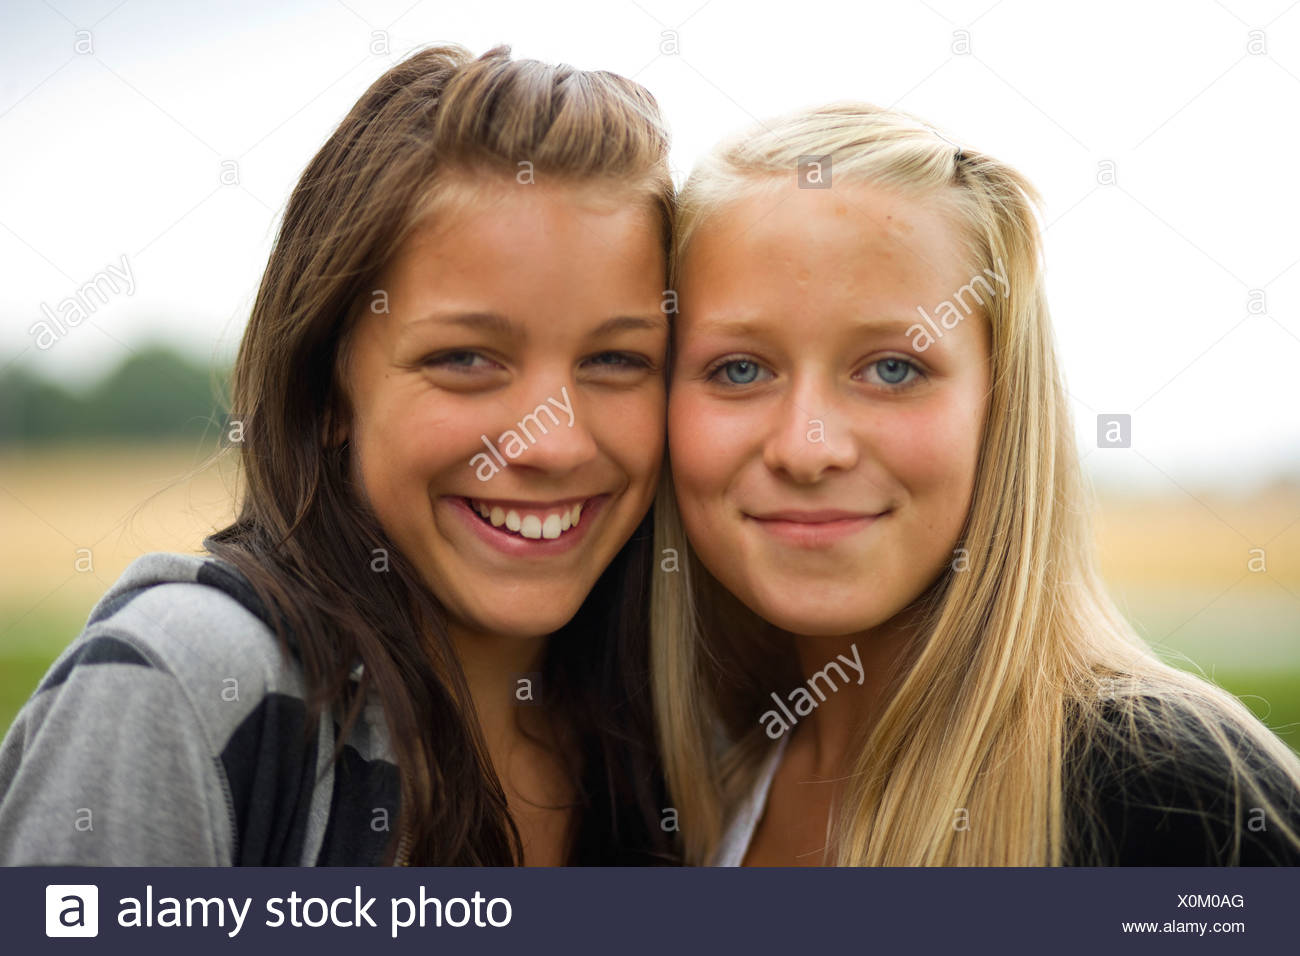 Two friends, Sweden. - Stock Image